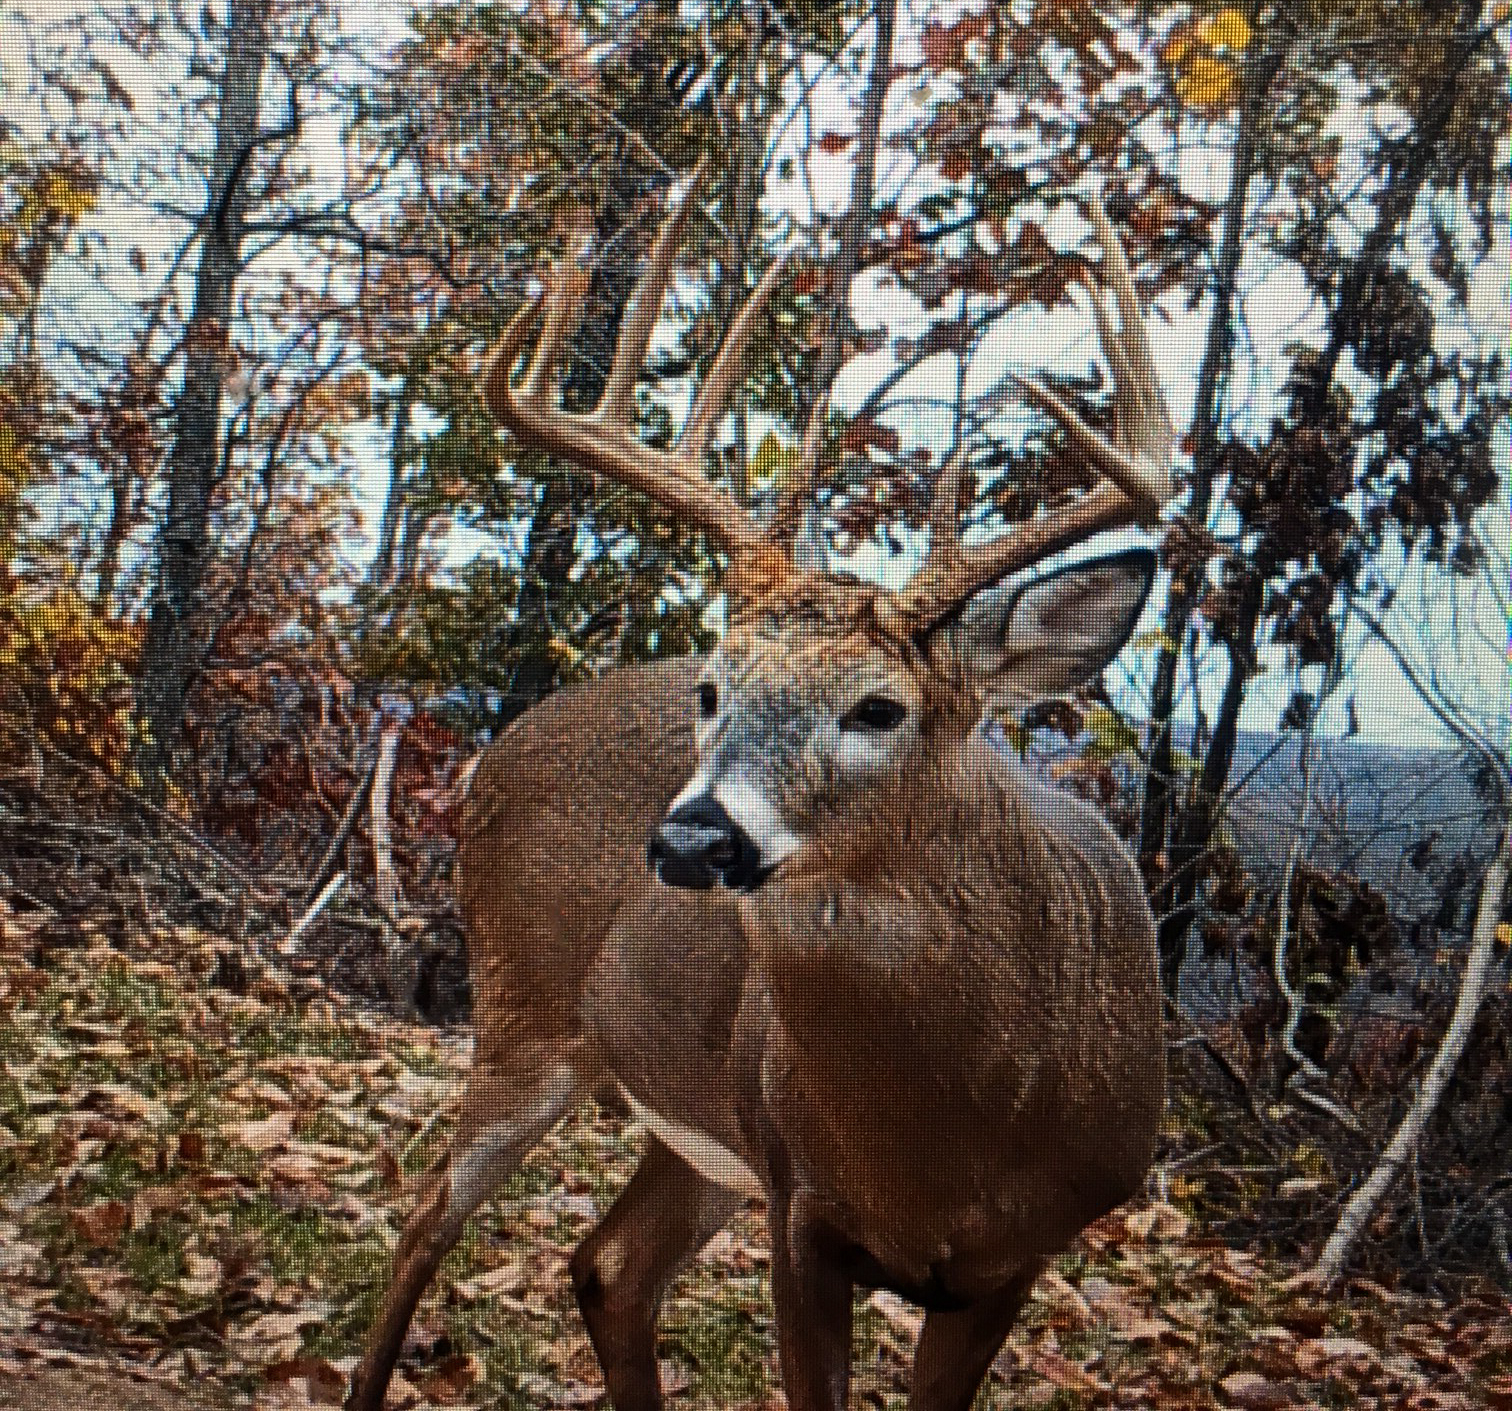 Lewis KY Trail Cam 9